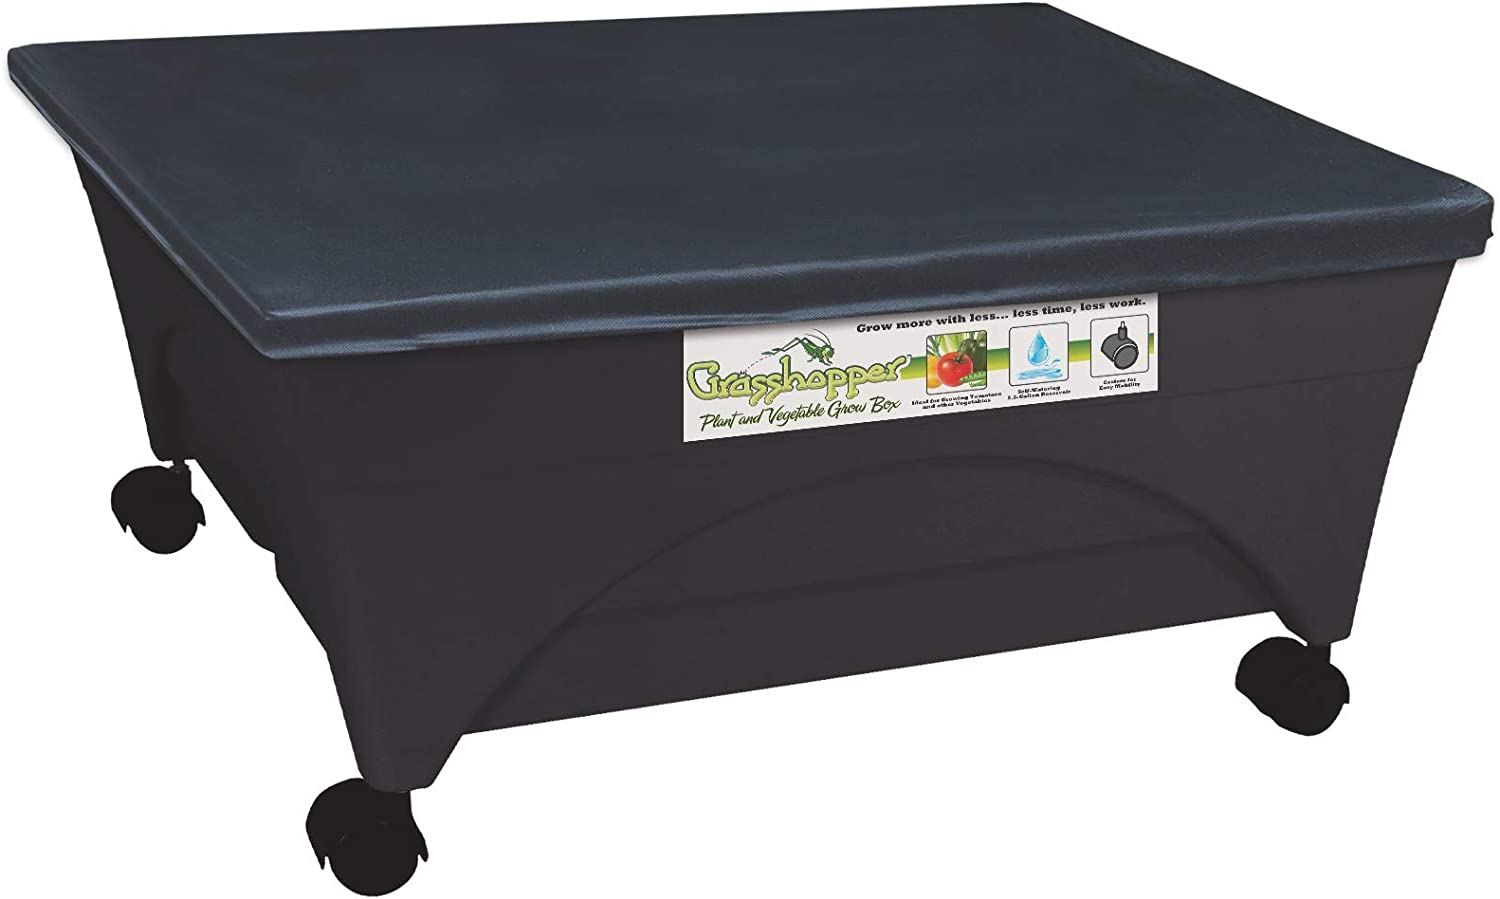 Emsco Group 2377 Grasshopper Raised Bed Self Watering-with Casters-Black Grow Box